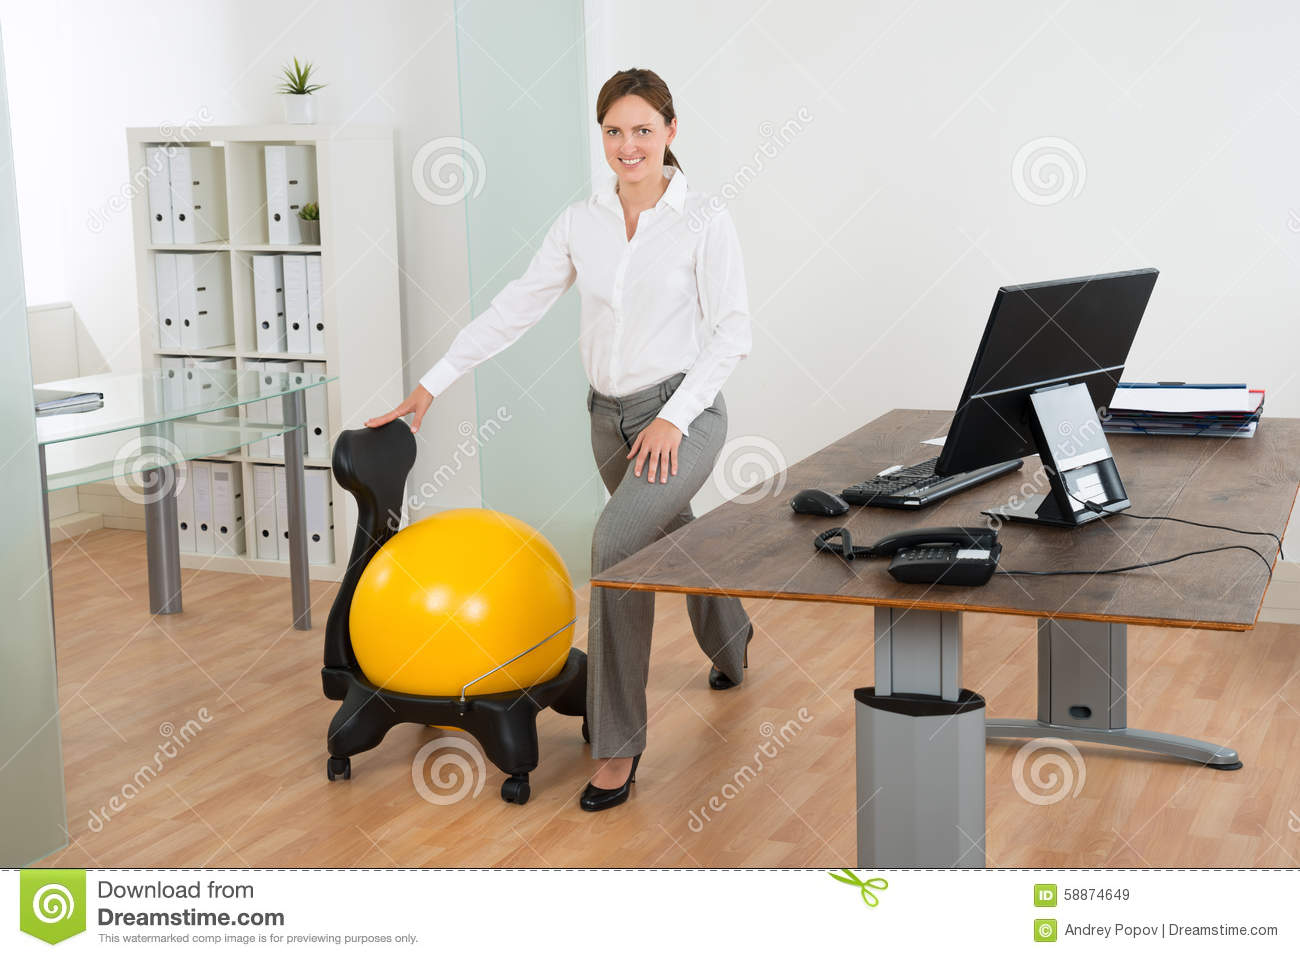 Pilates Ball Chair Businesswoman Exercising With Pilates Ball On Chair Stock Image